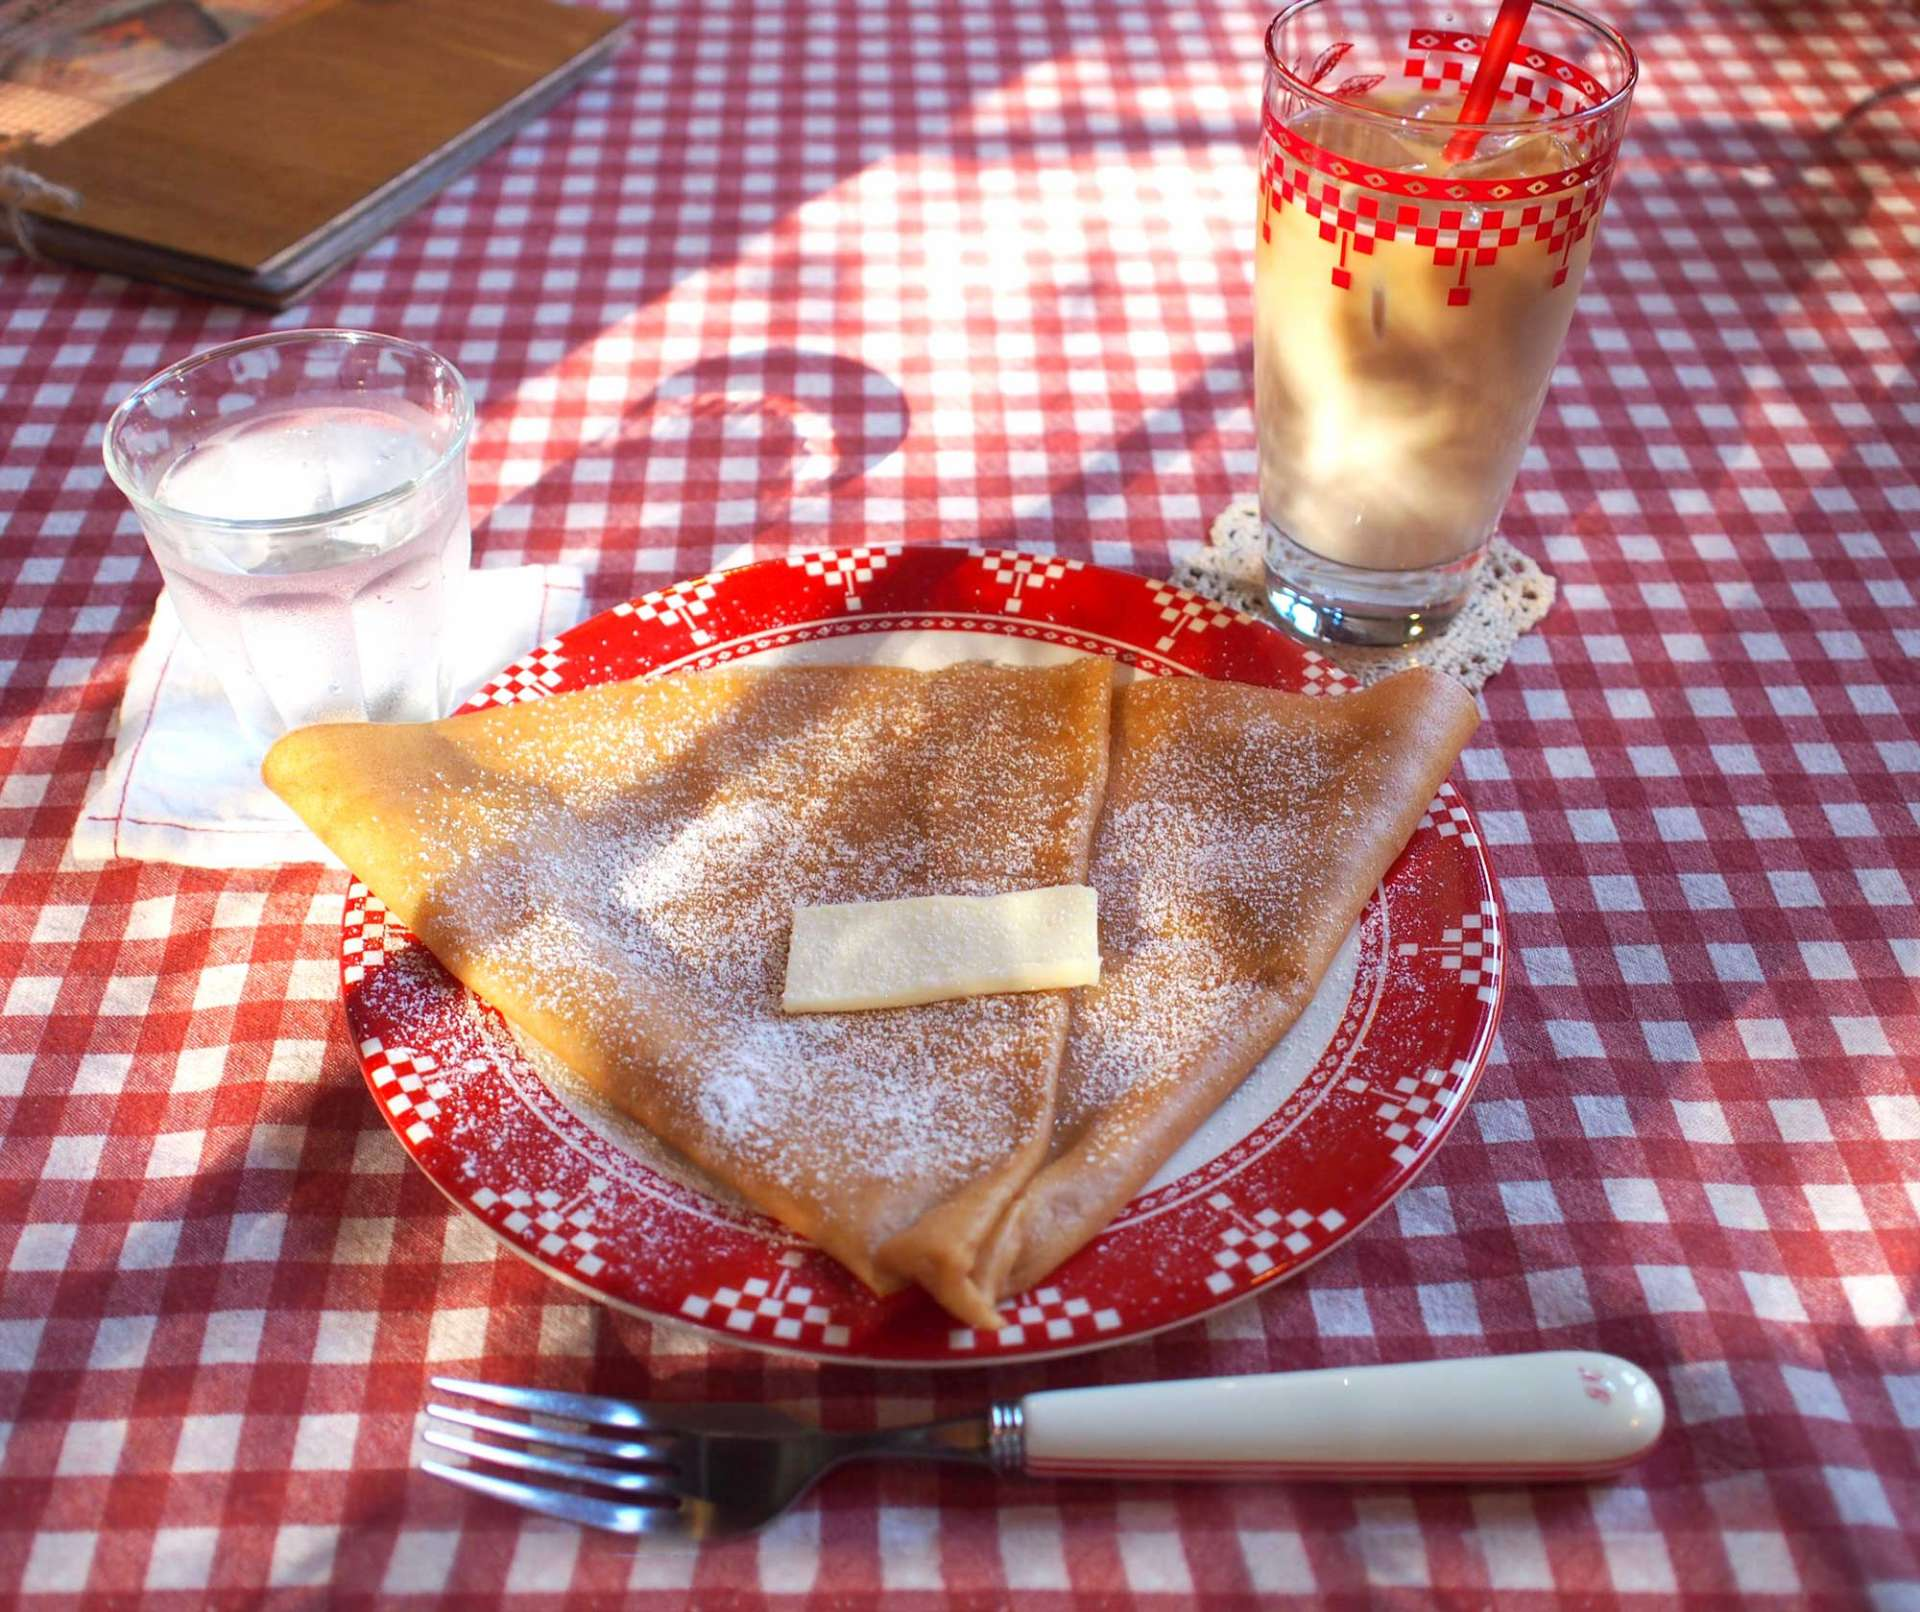 The Butter and Sugar Crêpe ¥500, with Iced Cafe au Lait